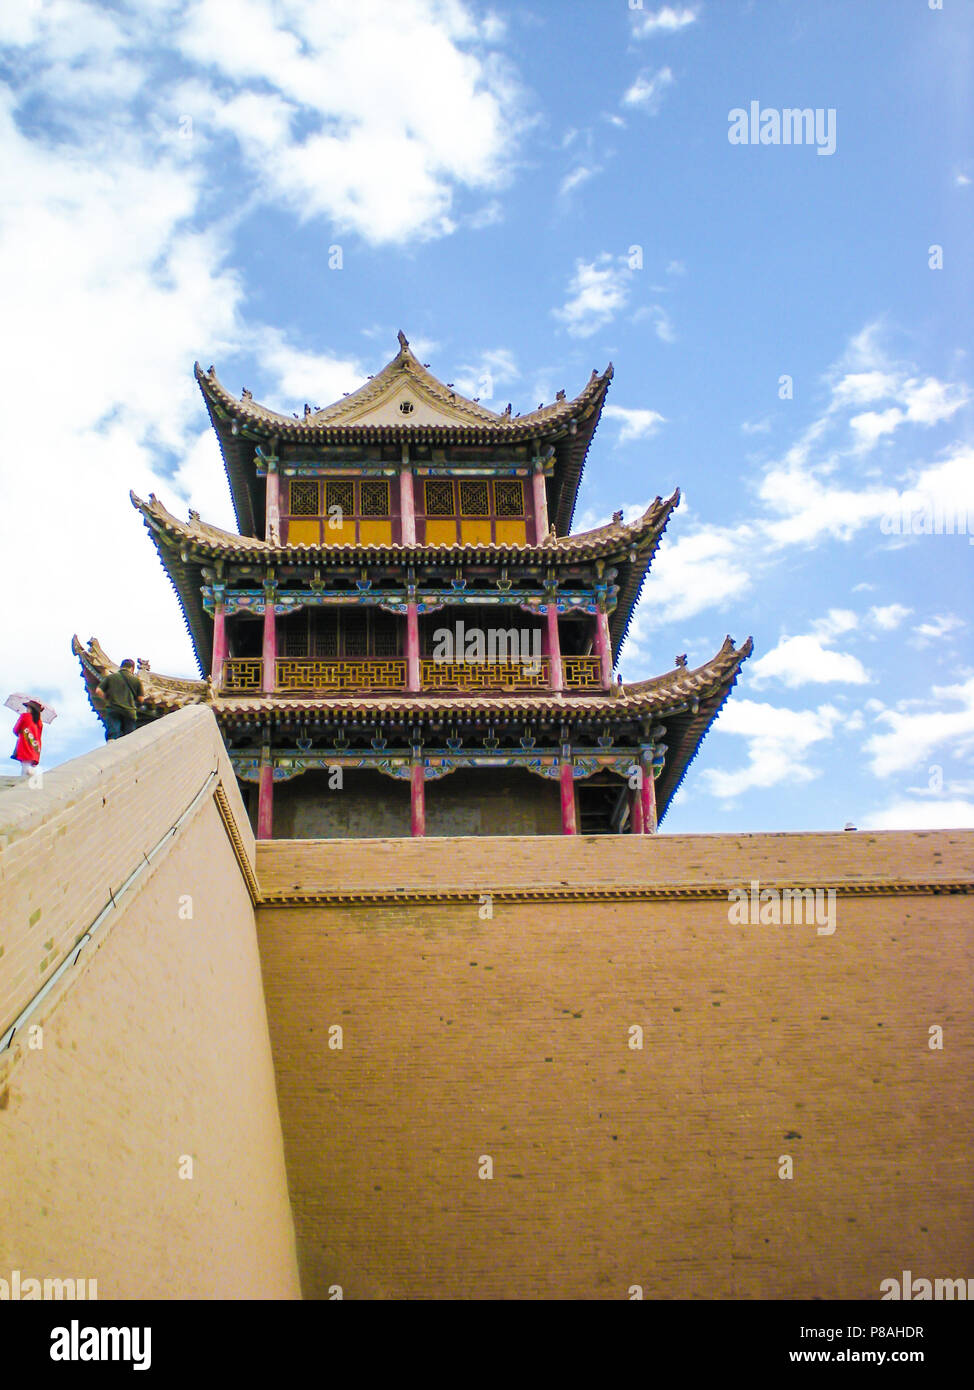 Ornate tower in the Jiayuguan fortress, China - Stock Image